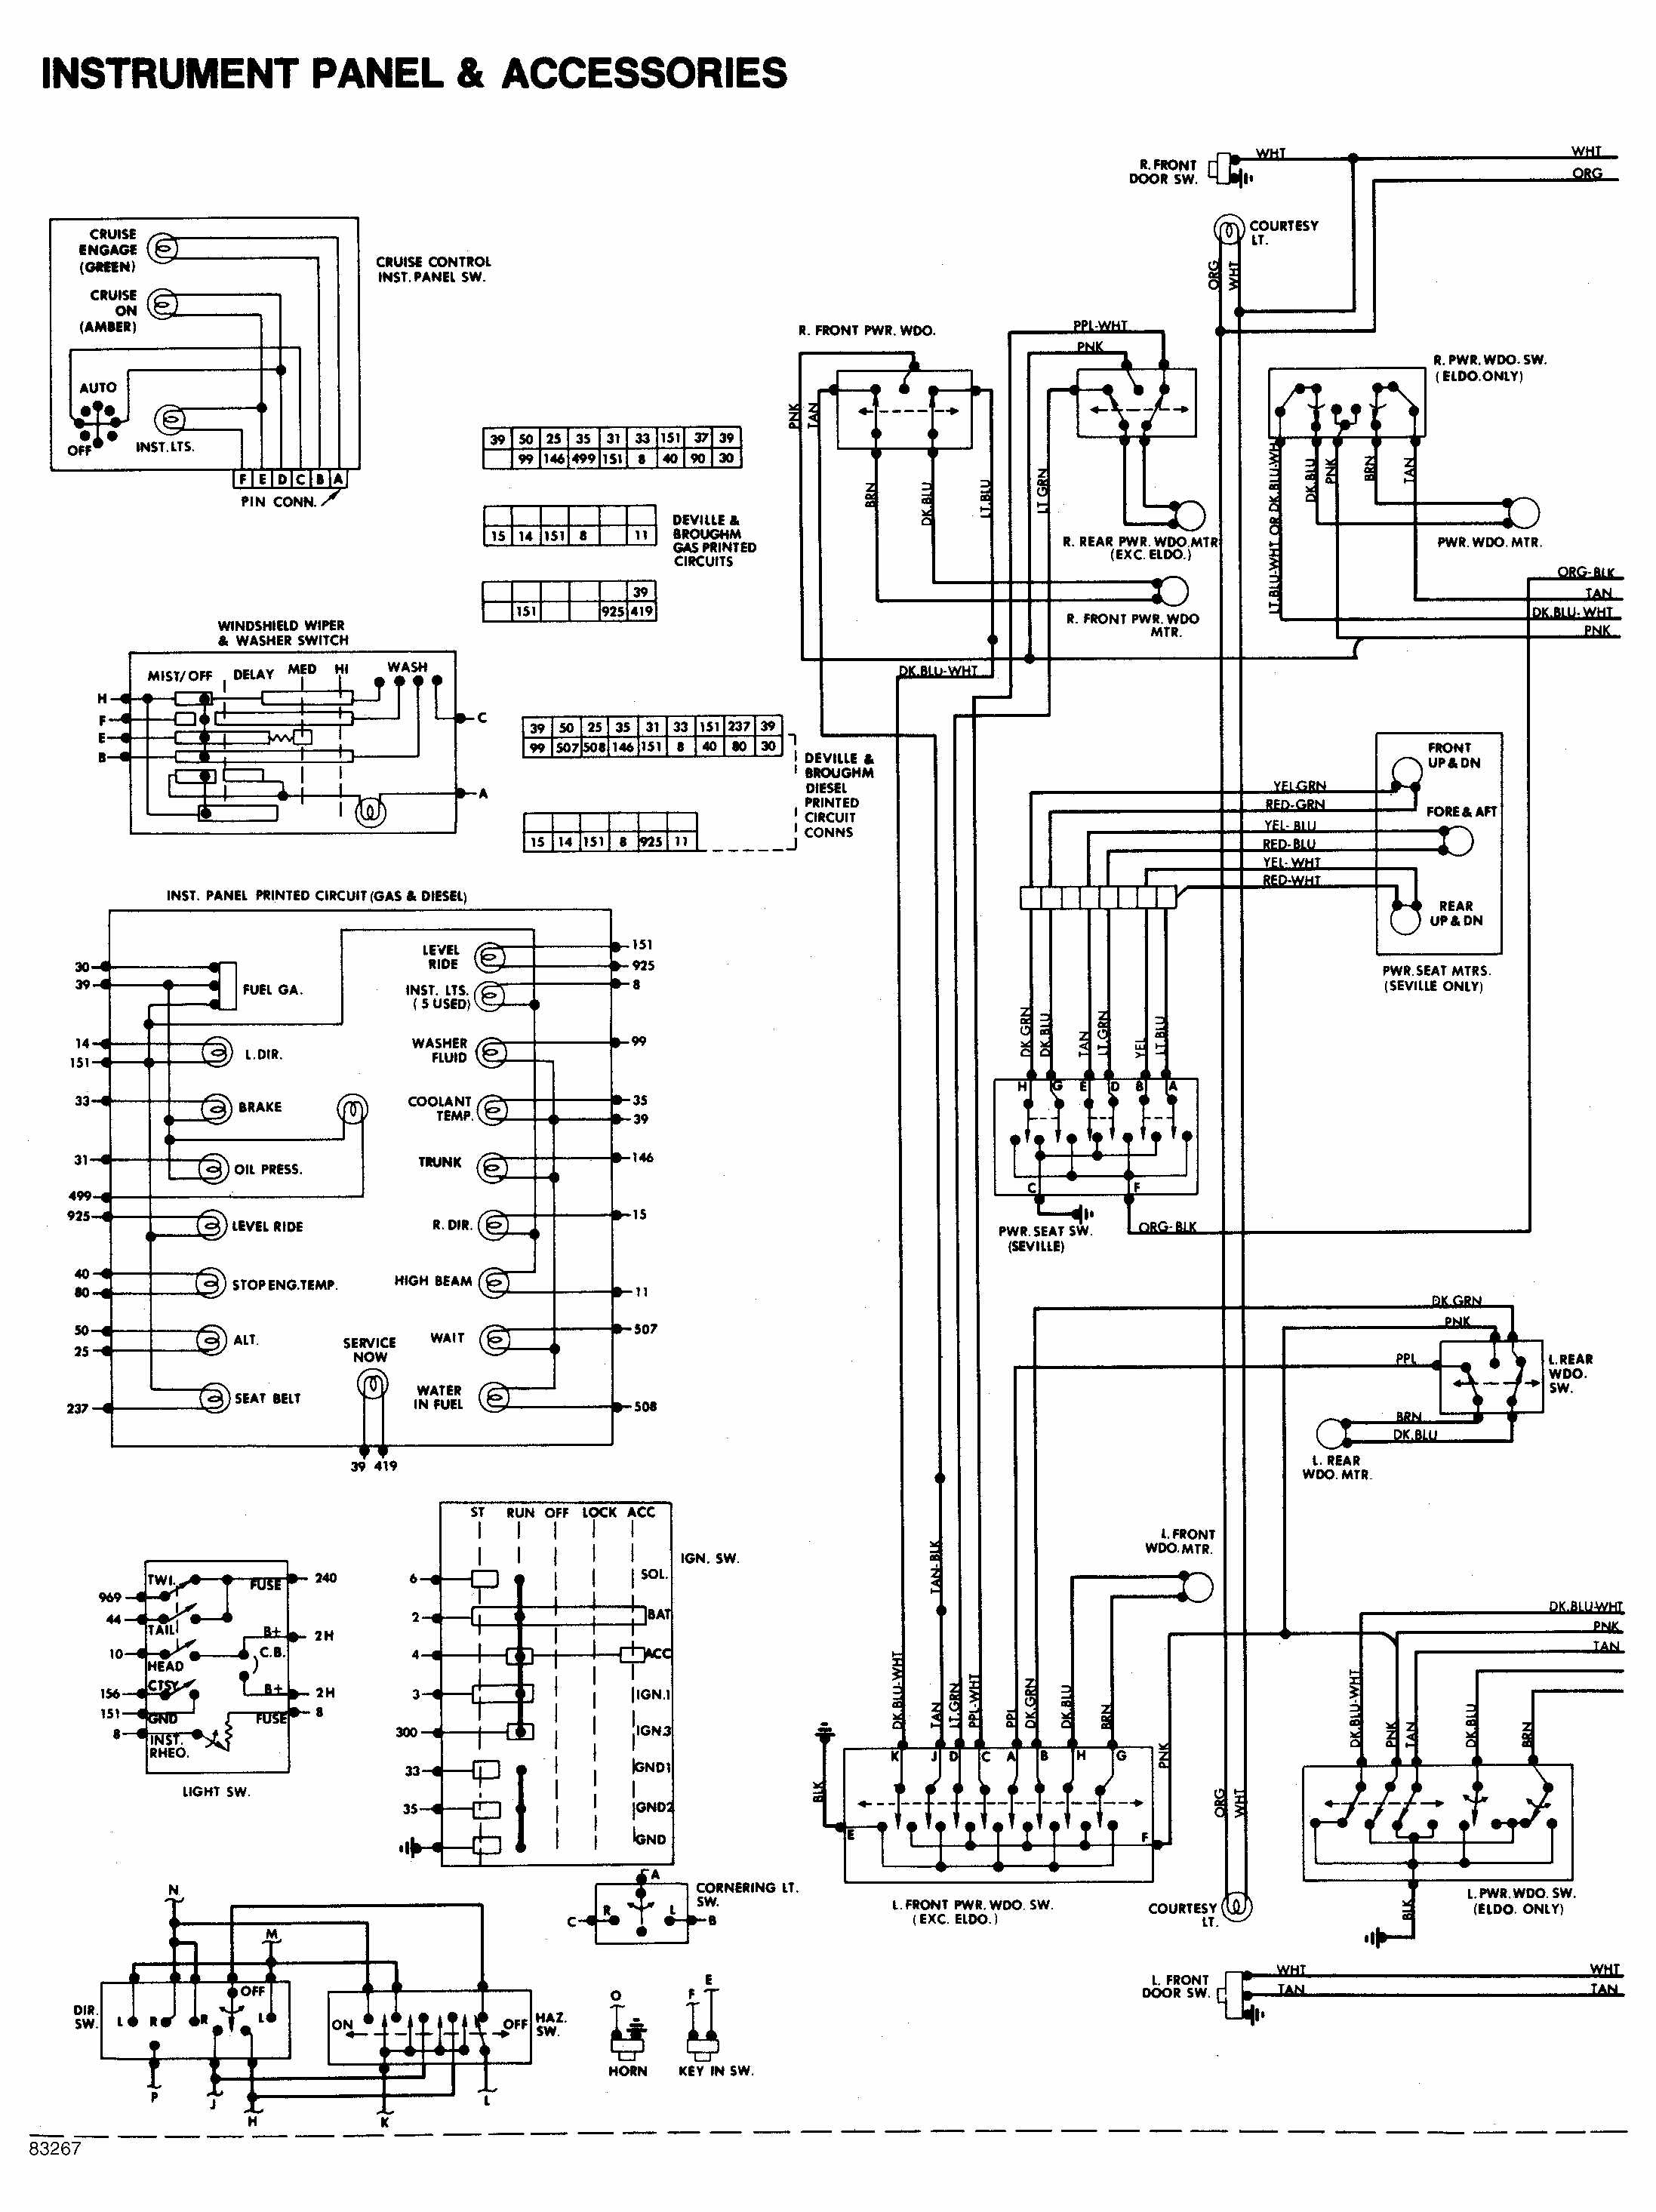 Chevy Diagrams 1994 Truck Brake Light Wiring Diagram Basic 1984 Cadillac Deville Instrument Panel And Accessories Drawing A